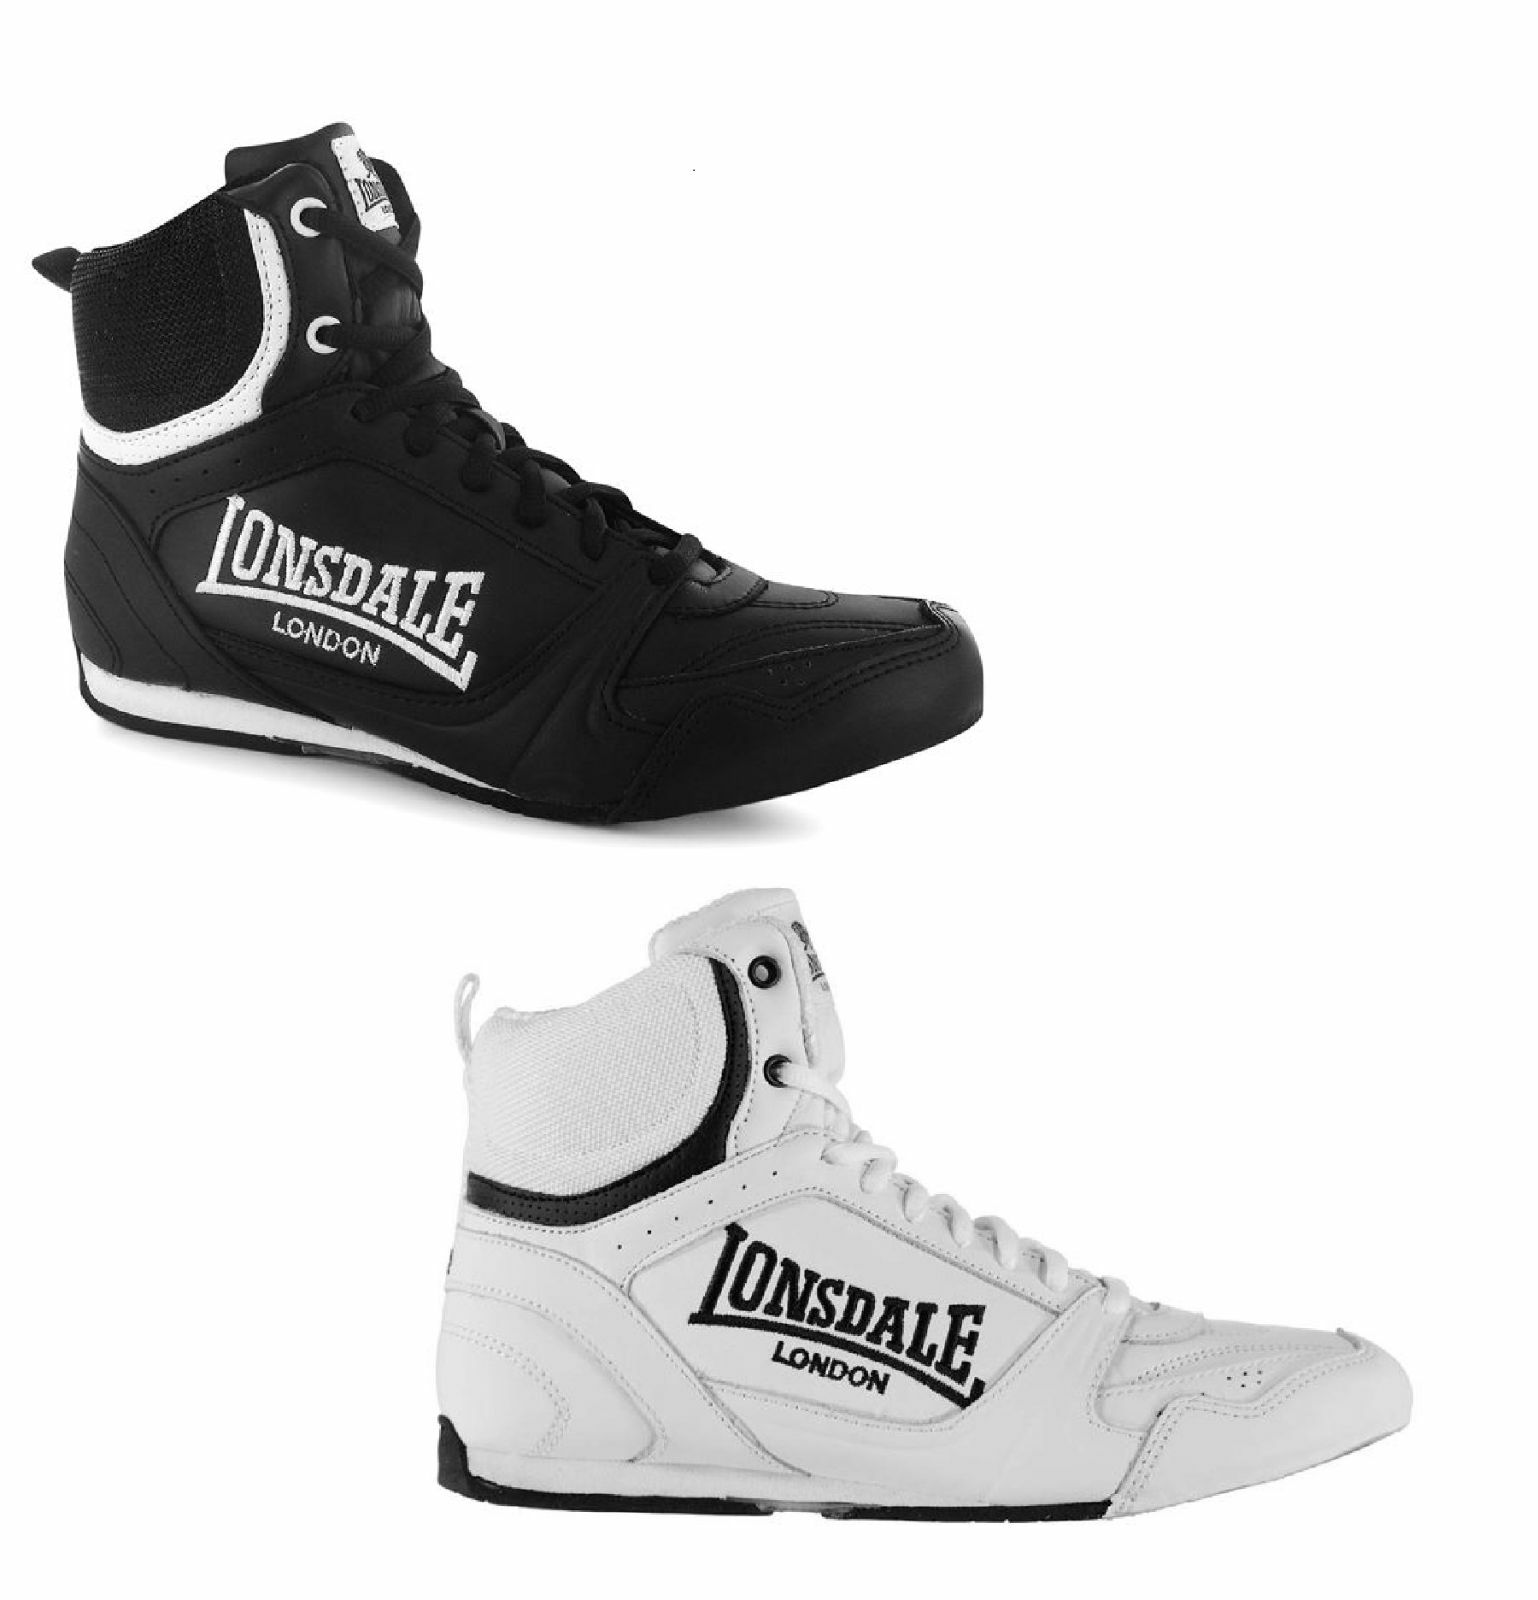 LONSDALE Men's Boxing shoes Trainers Sneakers Trainers Sports Low Gr 42.5 44